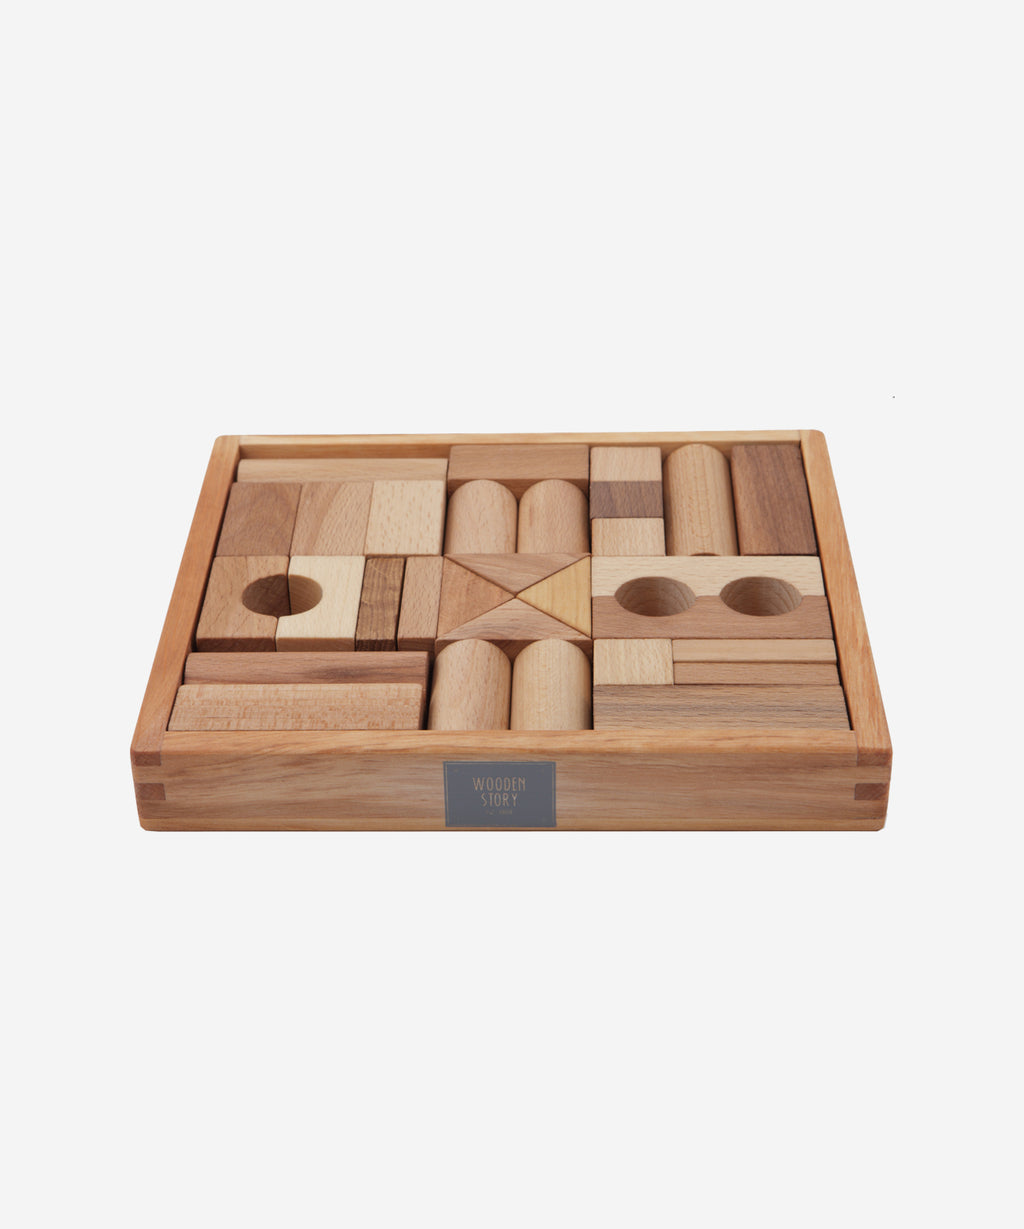 Wooden Story - Natural Blocks in Tray - 30pcs